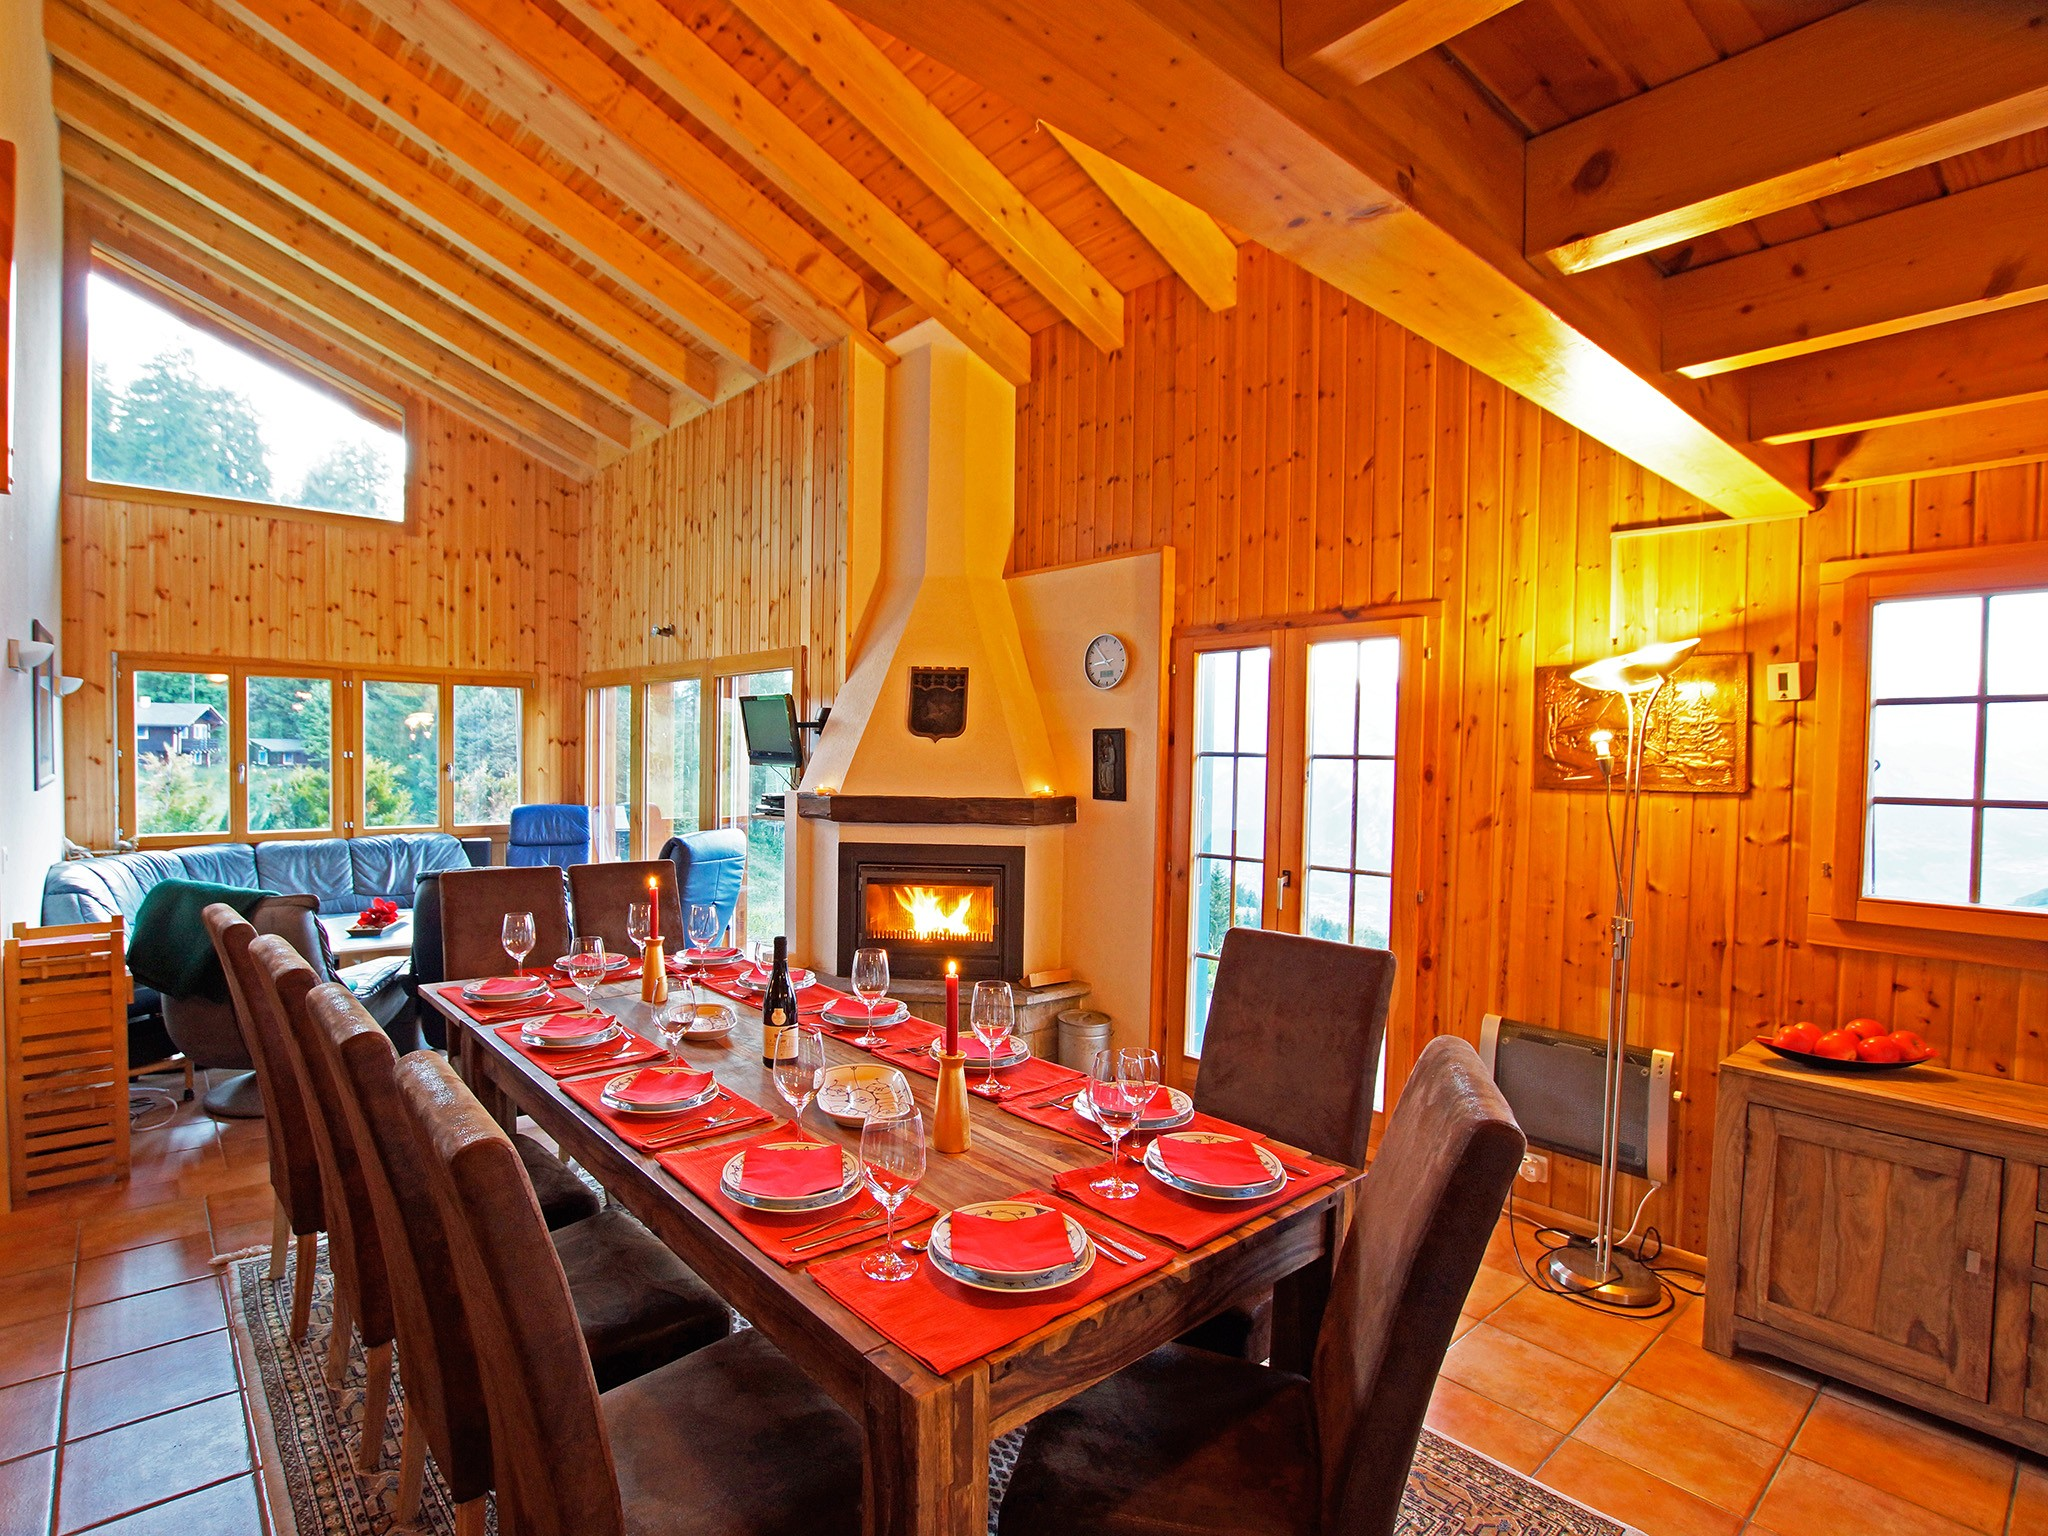 Chalet Alpina - dining area